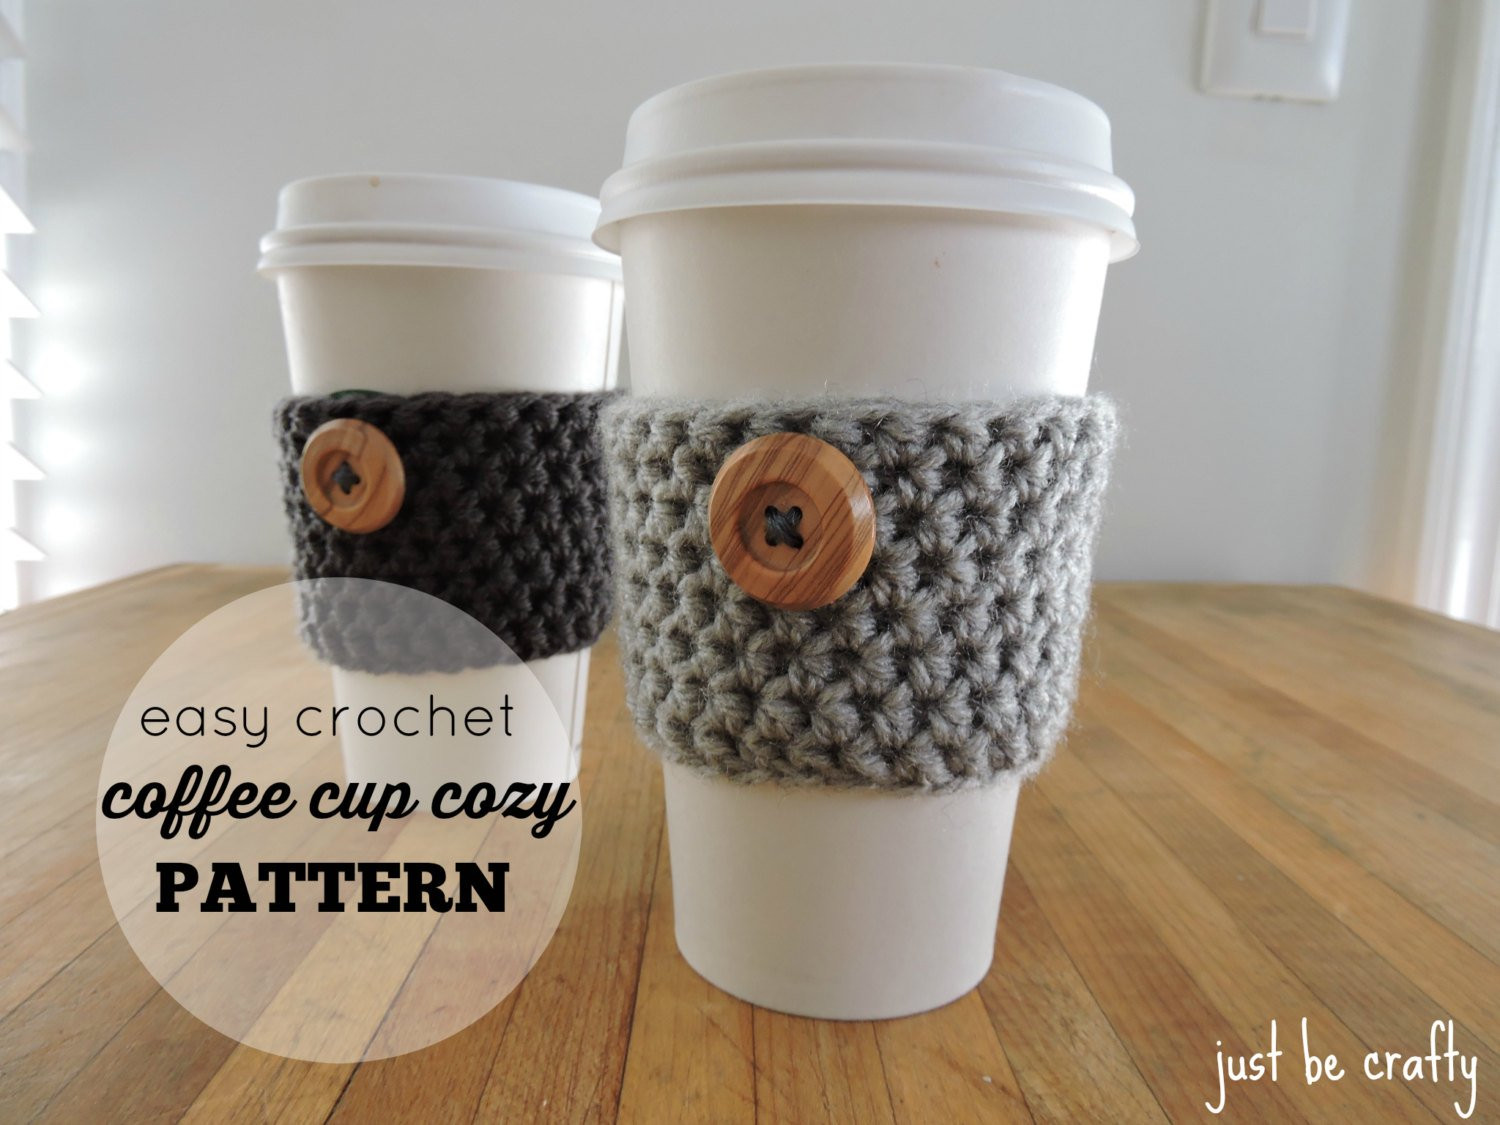 Crochet Coffee Cup Cozy Inspirational Crochet Coffee Cup Cozy Pattern Pdf Download Coffee Cup Cozy Of Crochet Coffee Cup Cozy Elegant Wooftastic Puppy Crochet Coffee Cozy